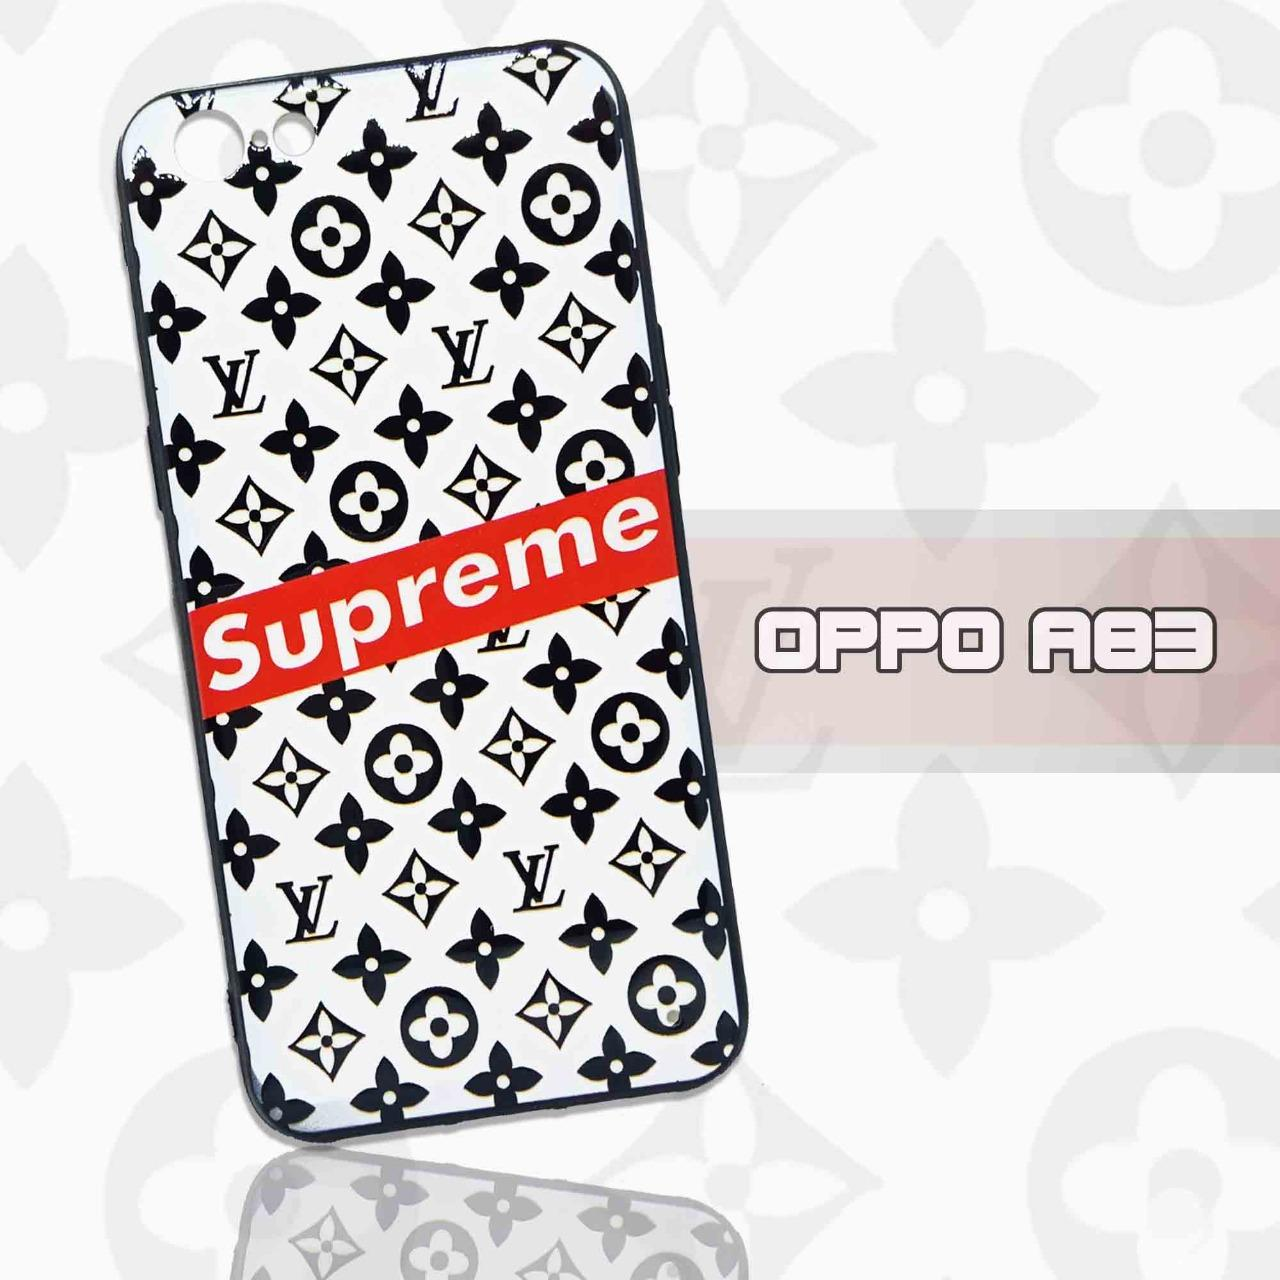 Softcase Fashion Phone Case New Oppo A83